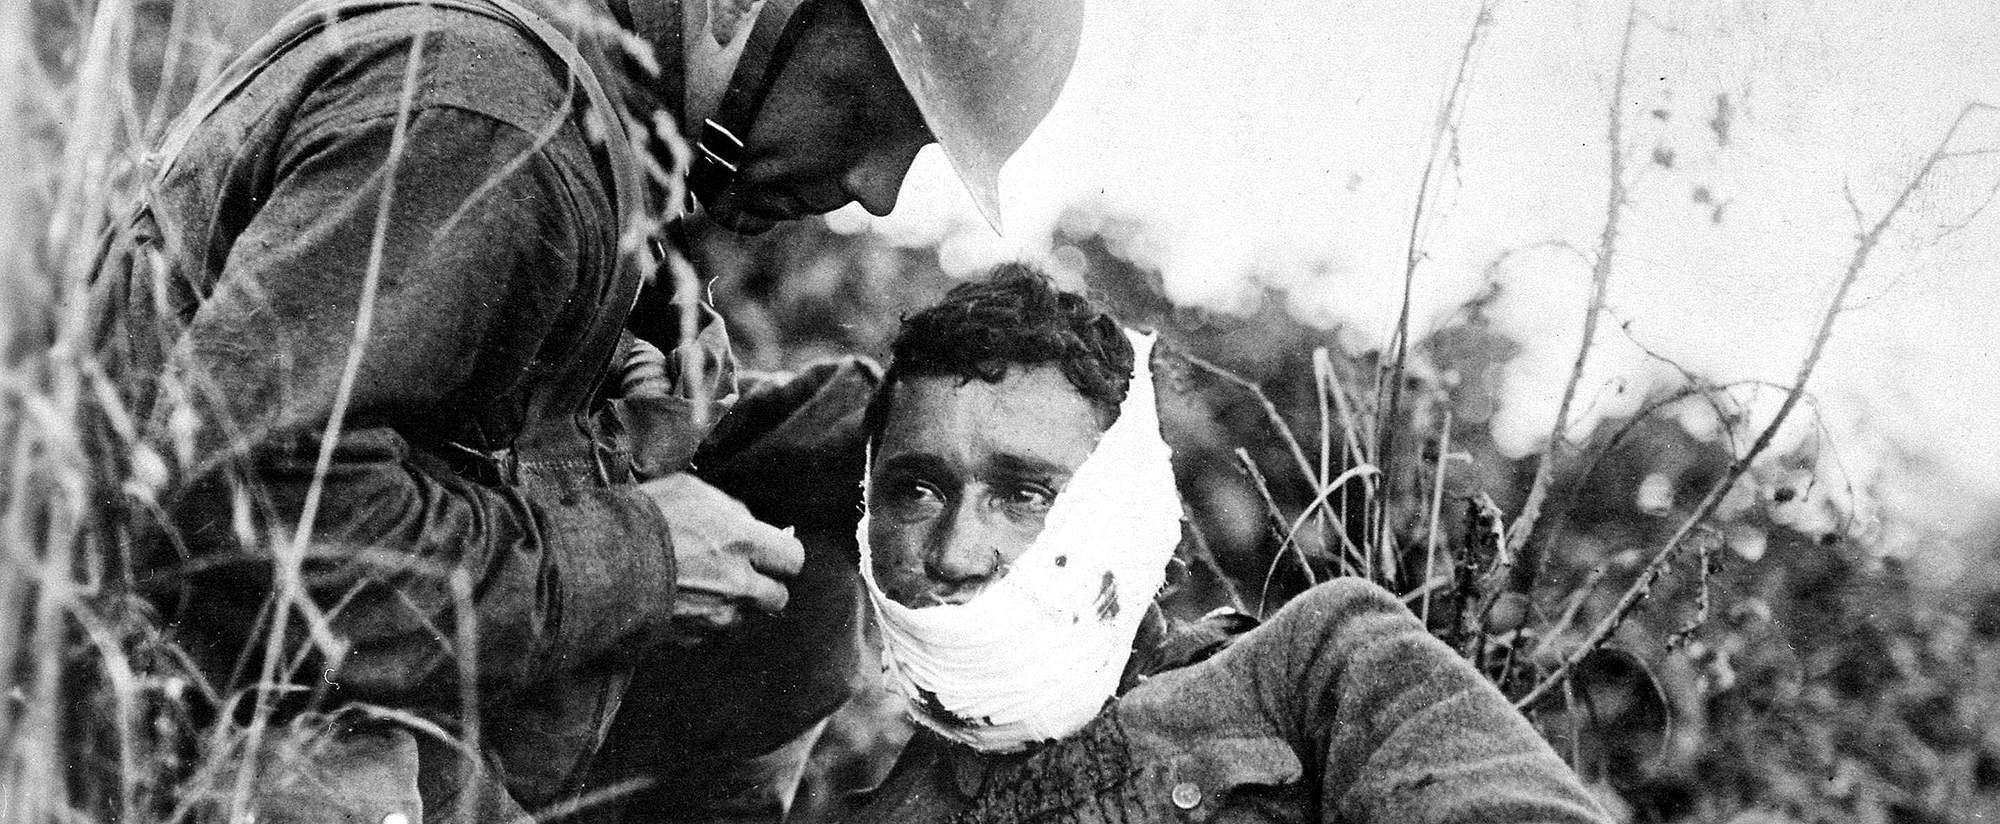 AMERICAN EXPERIENCE: The Great War - wounded soldier